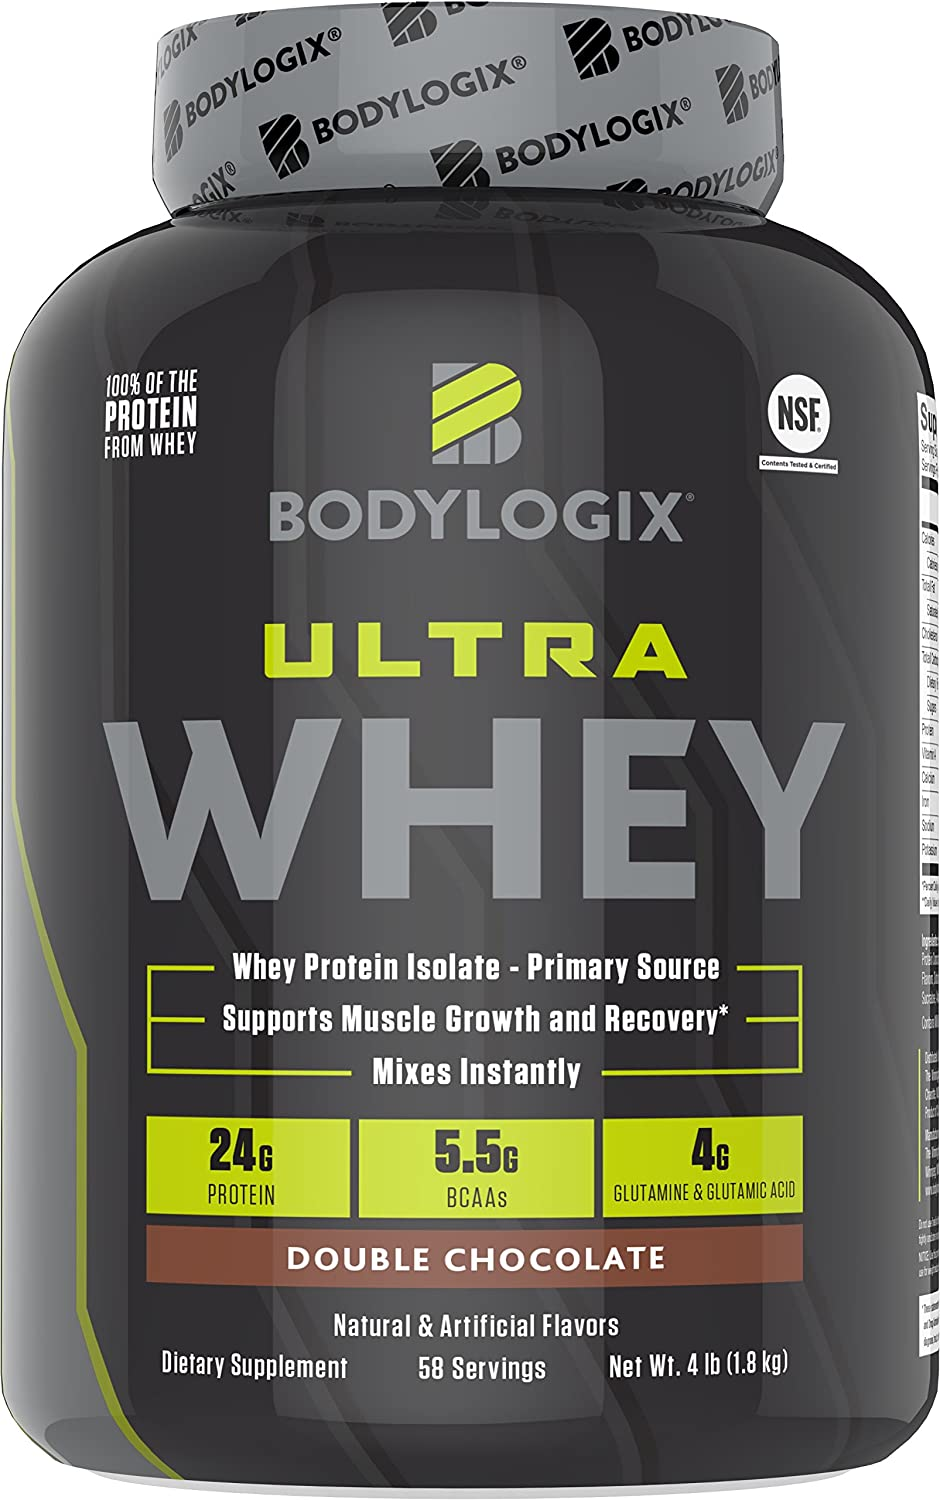 Bodylogix Ultra Whey NSF Certified Protein Powder, Double Chocolate, 4 Pounds